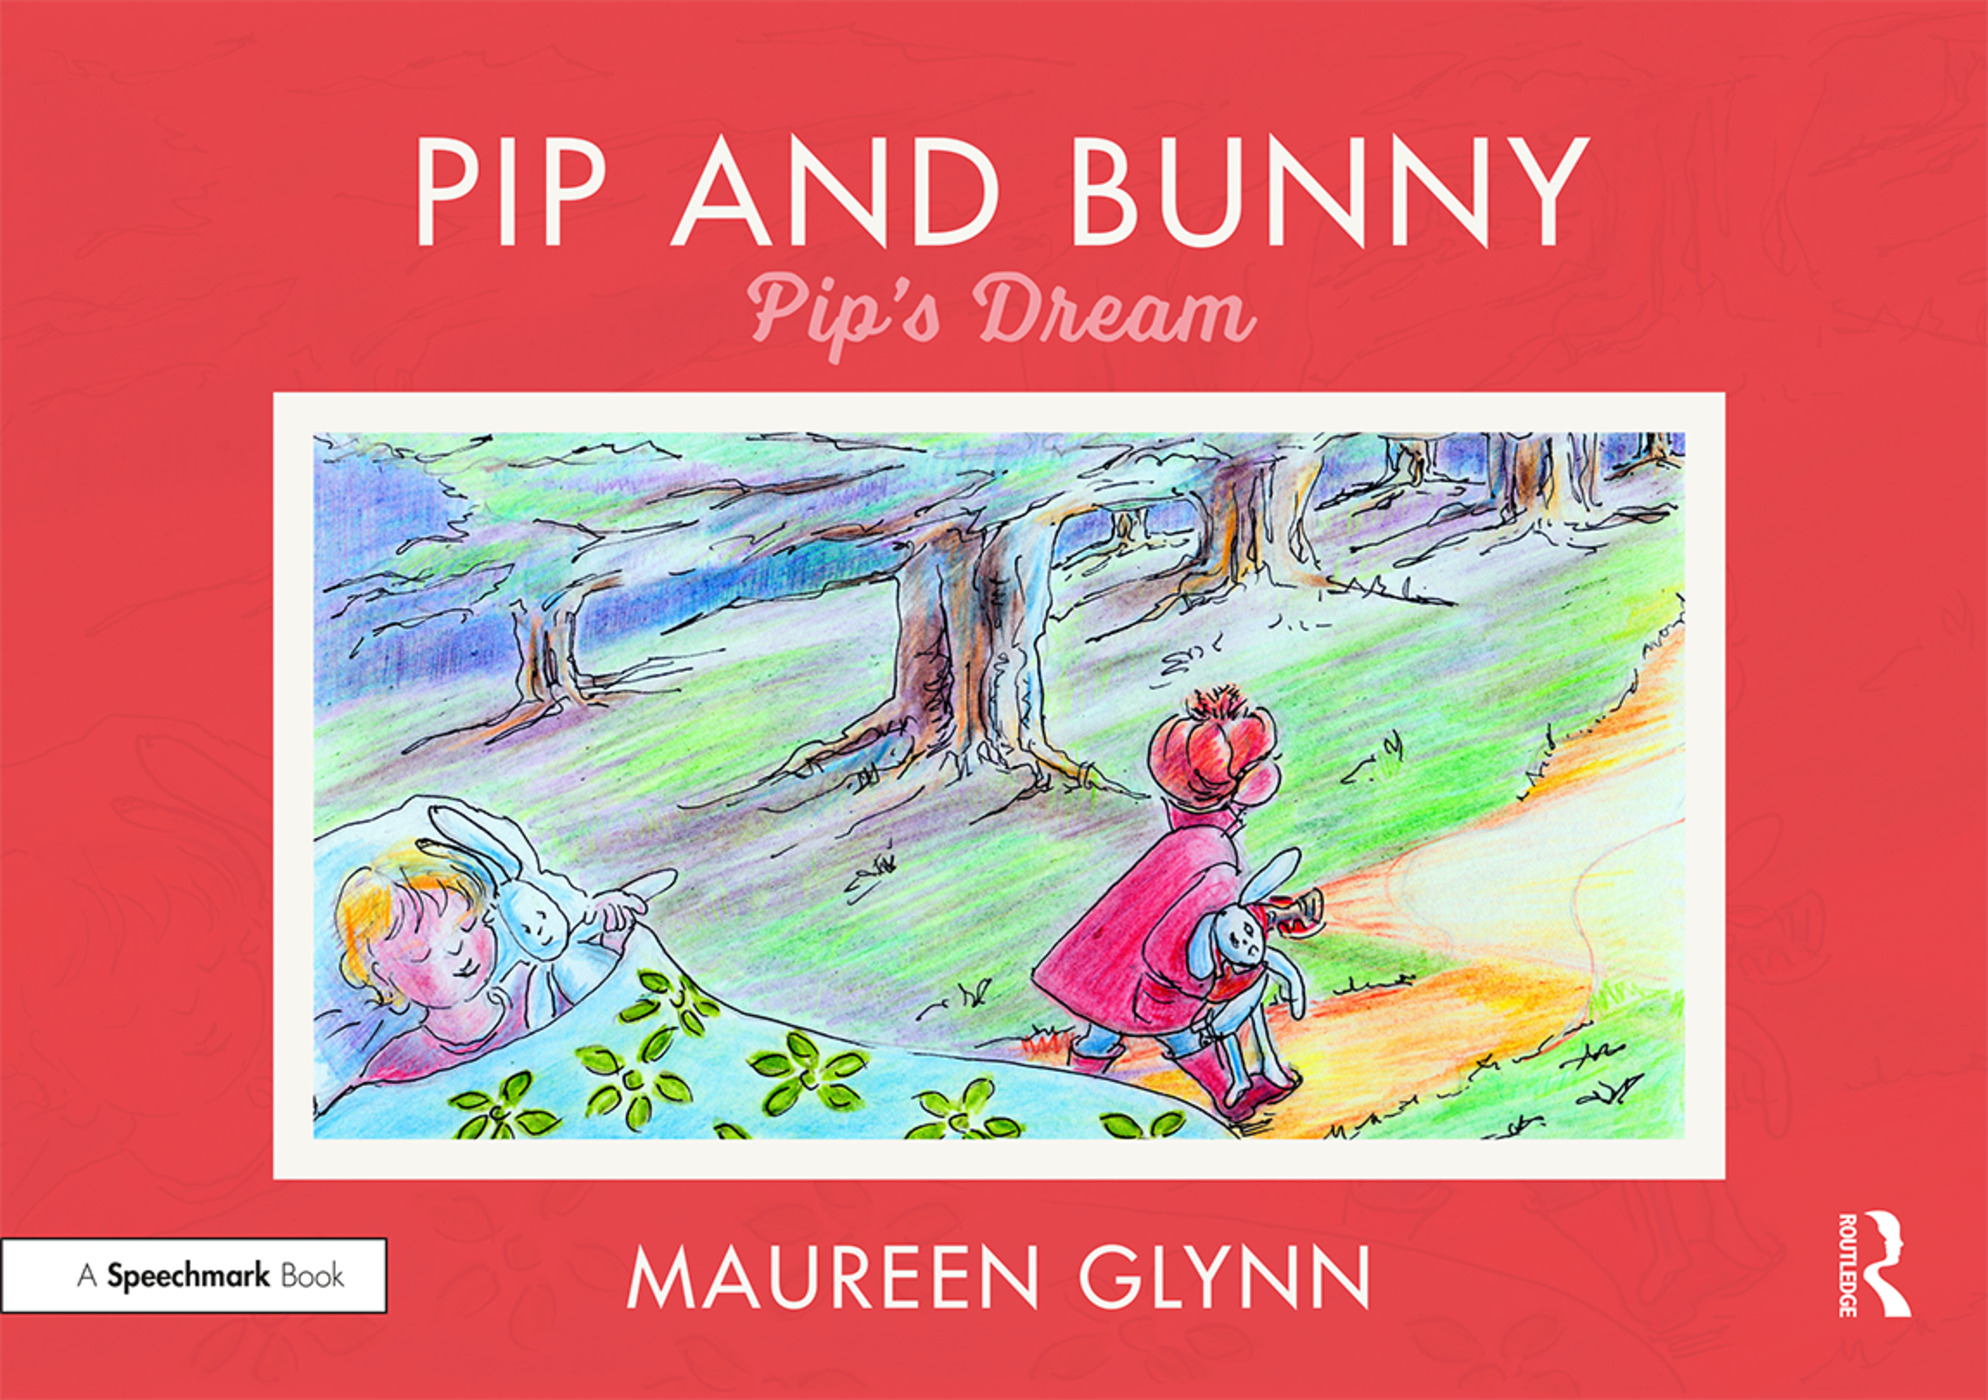 Pip and Bunny: Pip's Dream book cover